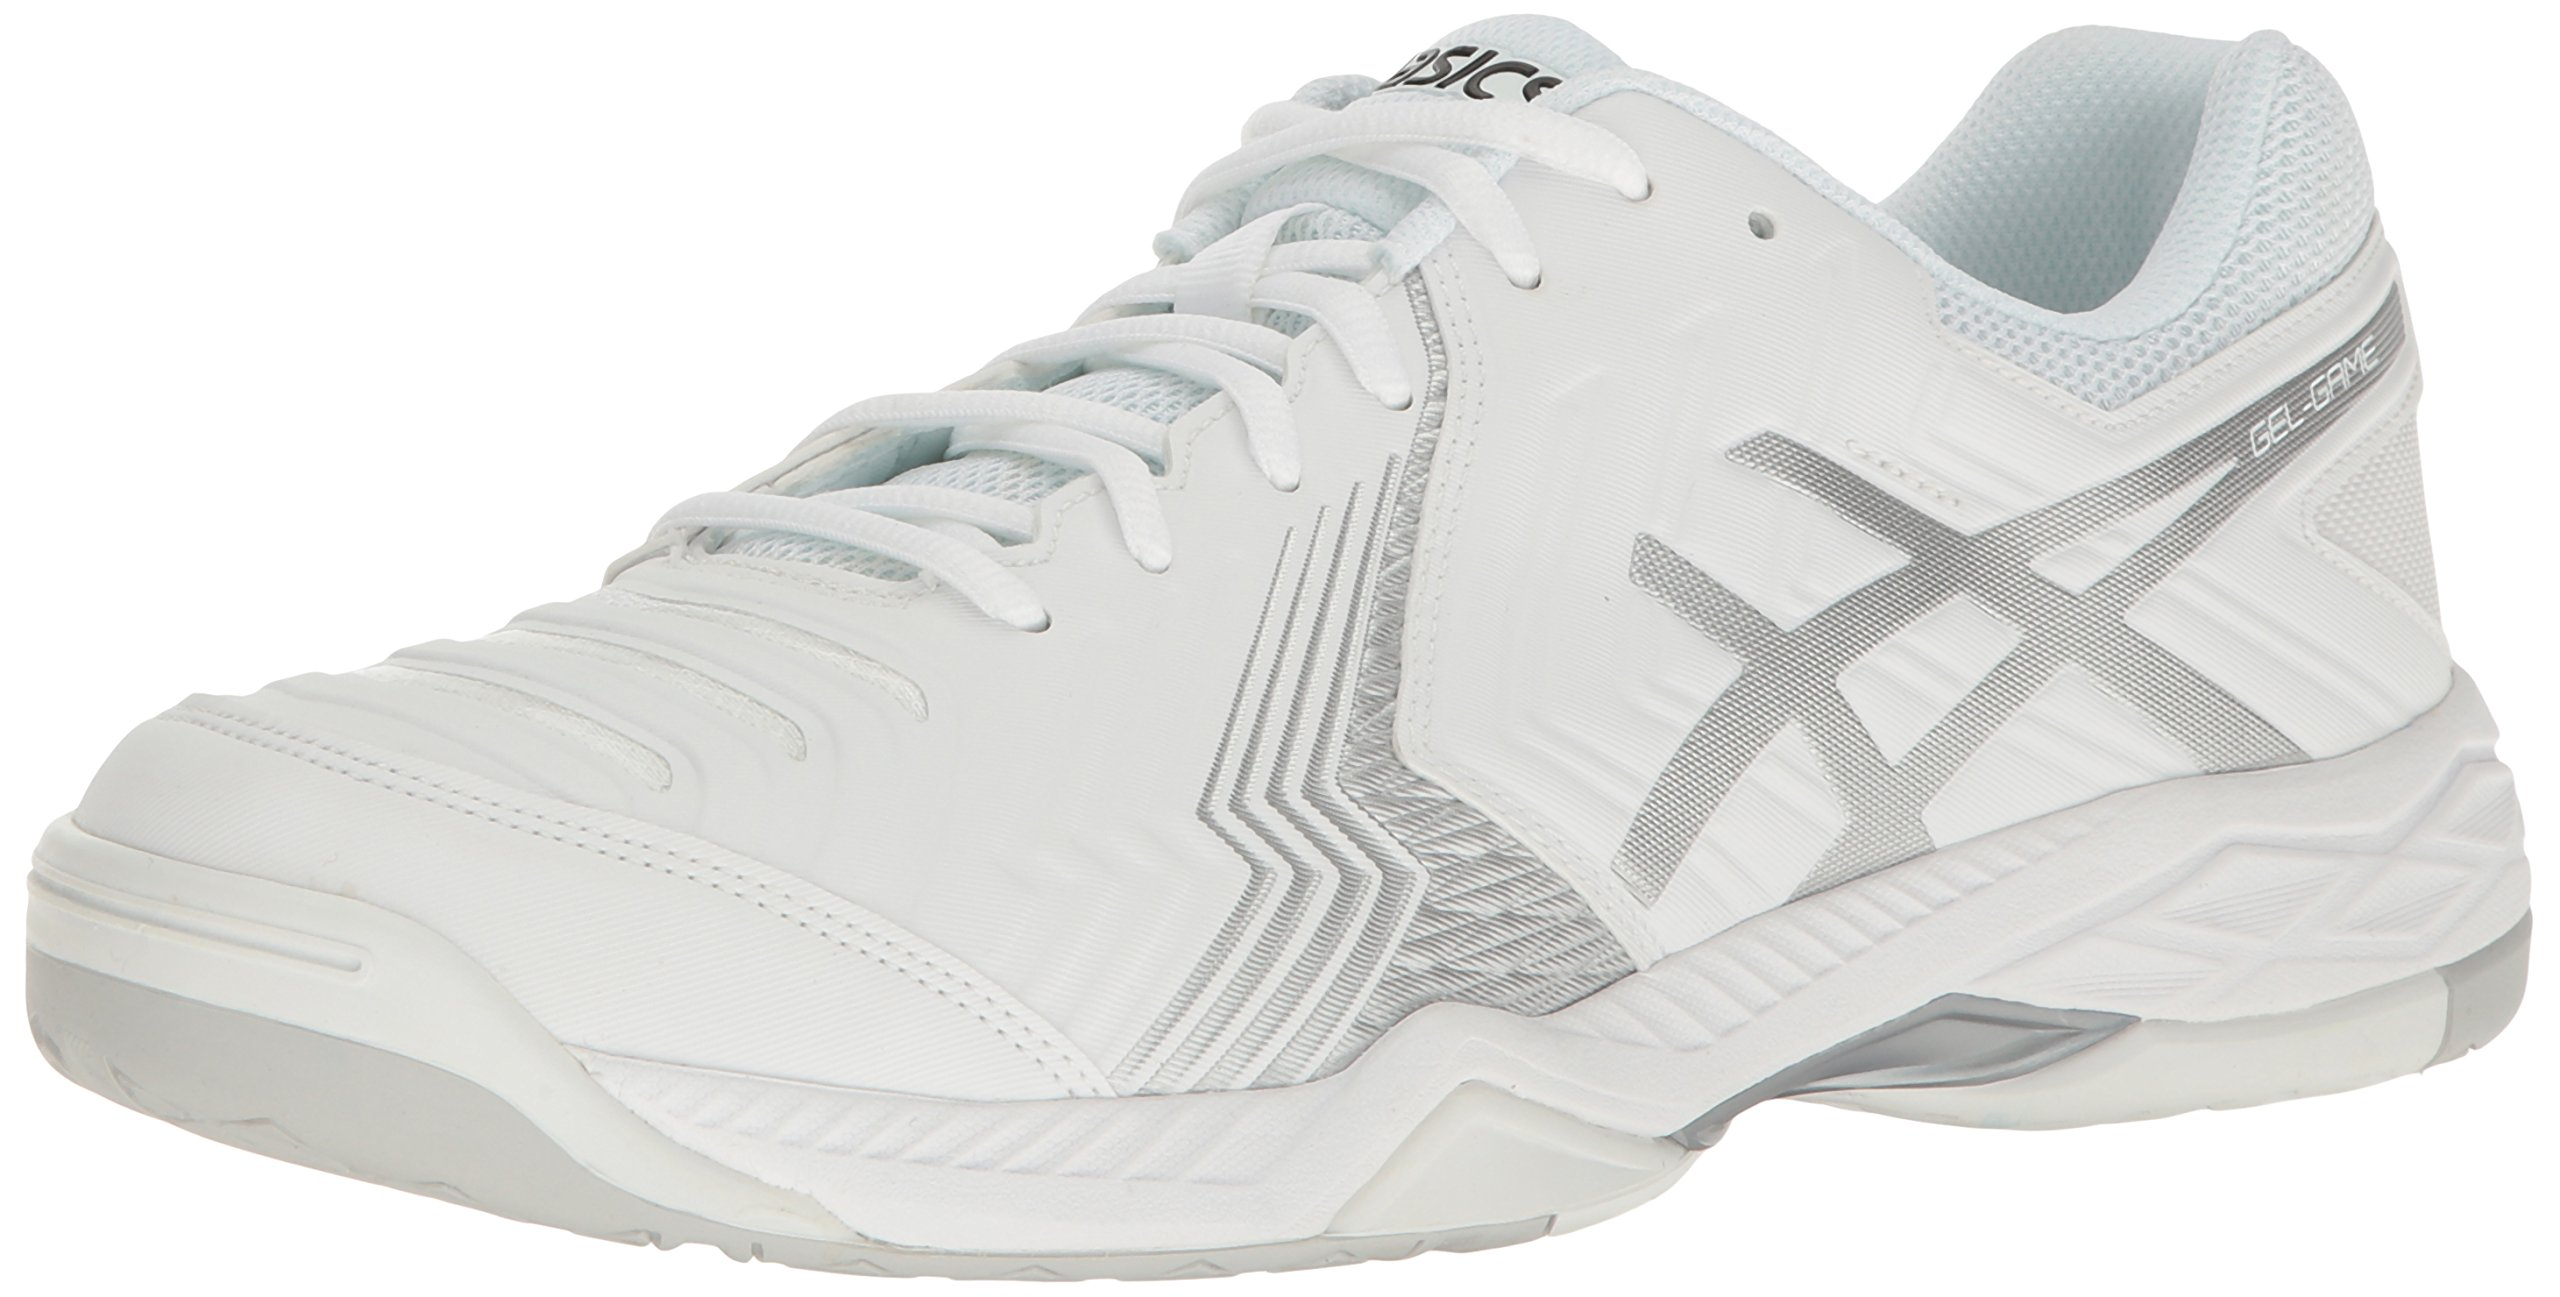 ASICS Men's Gel-Game 6 Tennis Shoe, White/Silver, 11 M US